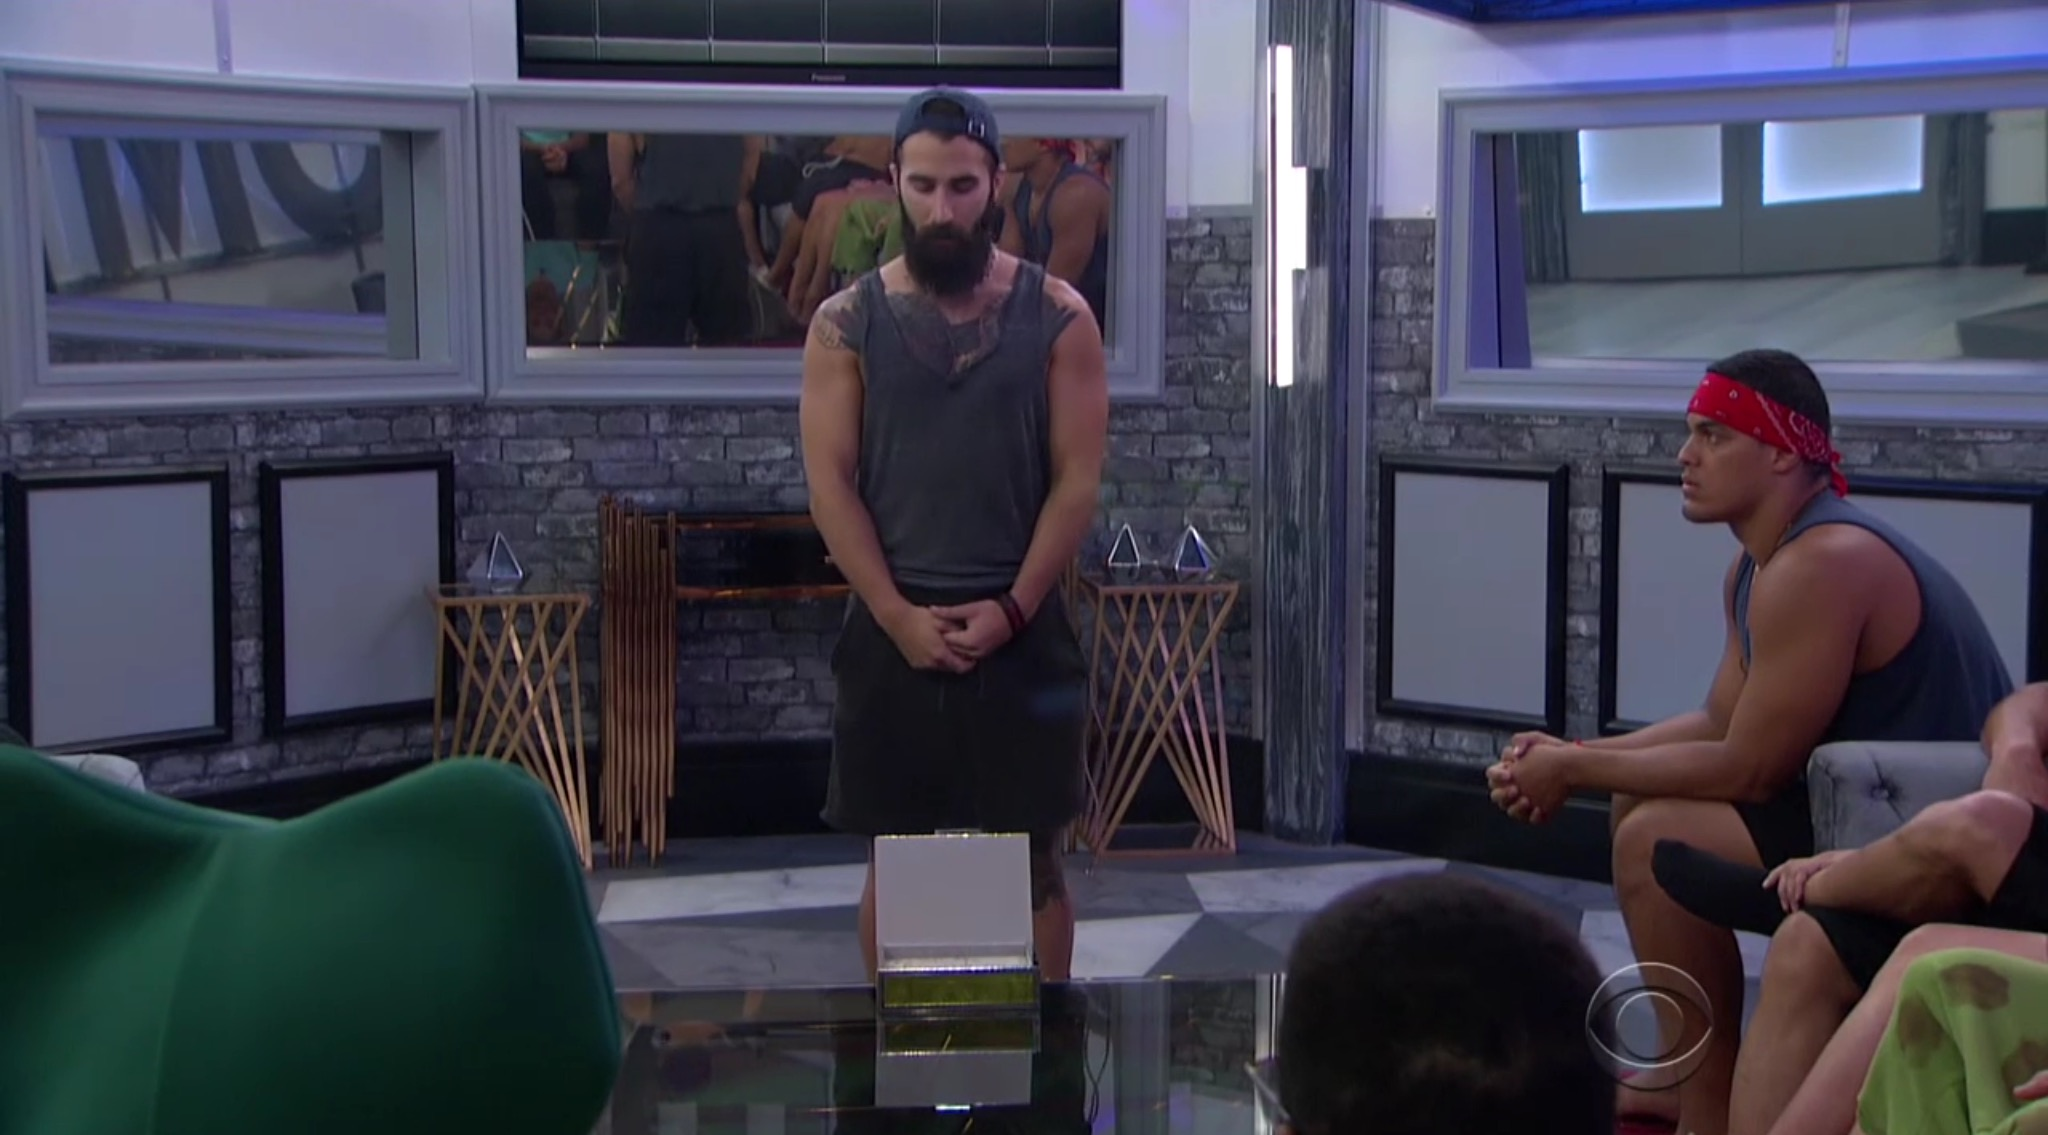 Who Was Evicted on Big Brother Last Night? 7/13/2017 | Big ...